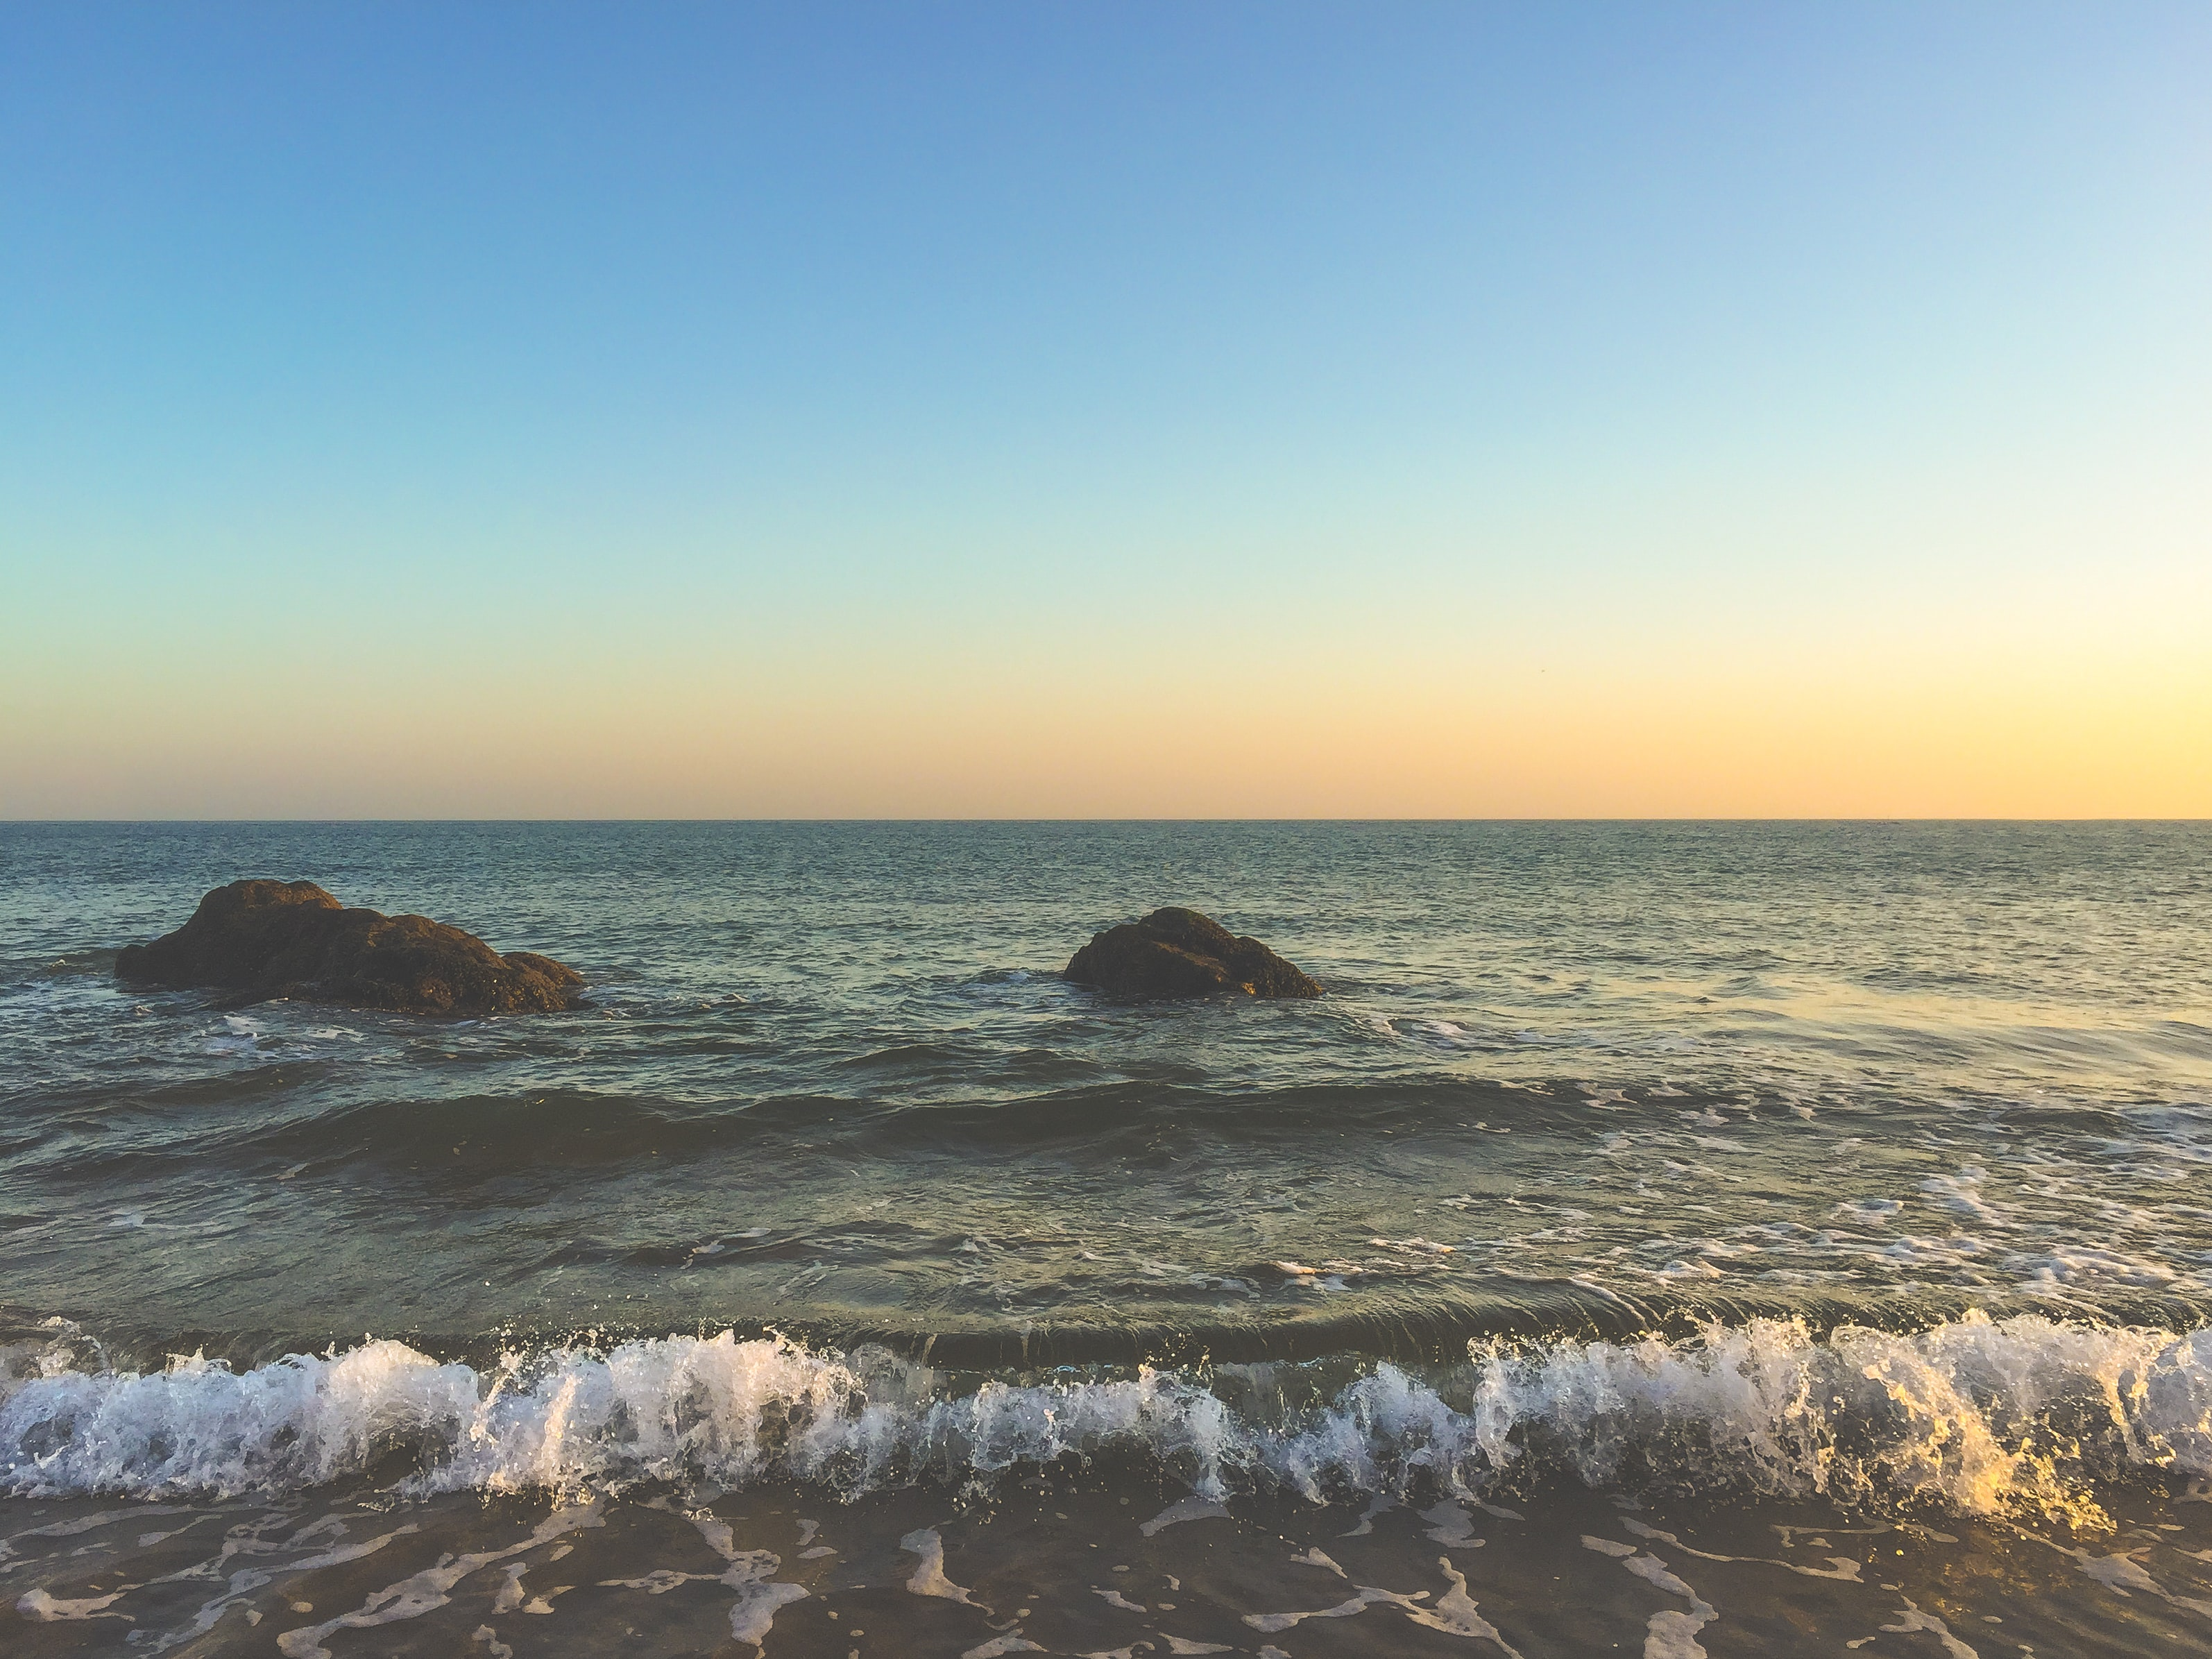 Ocean waves washing on the shore at sunset